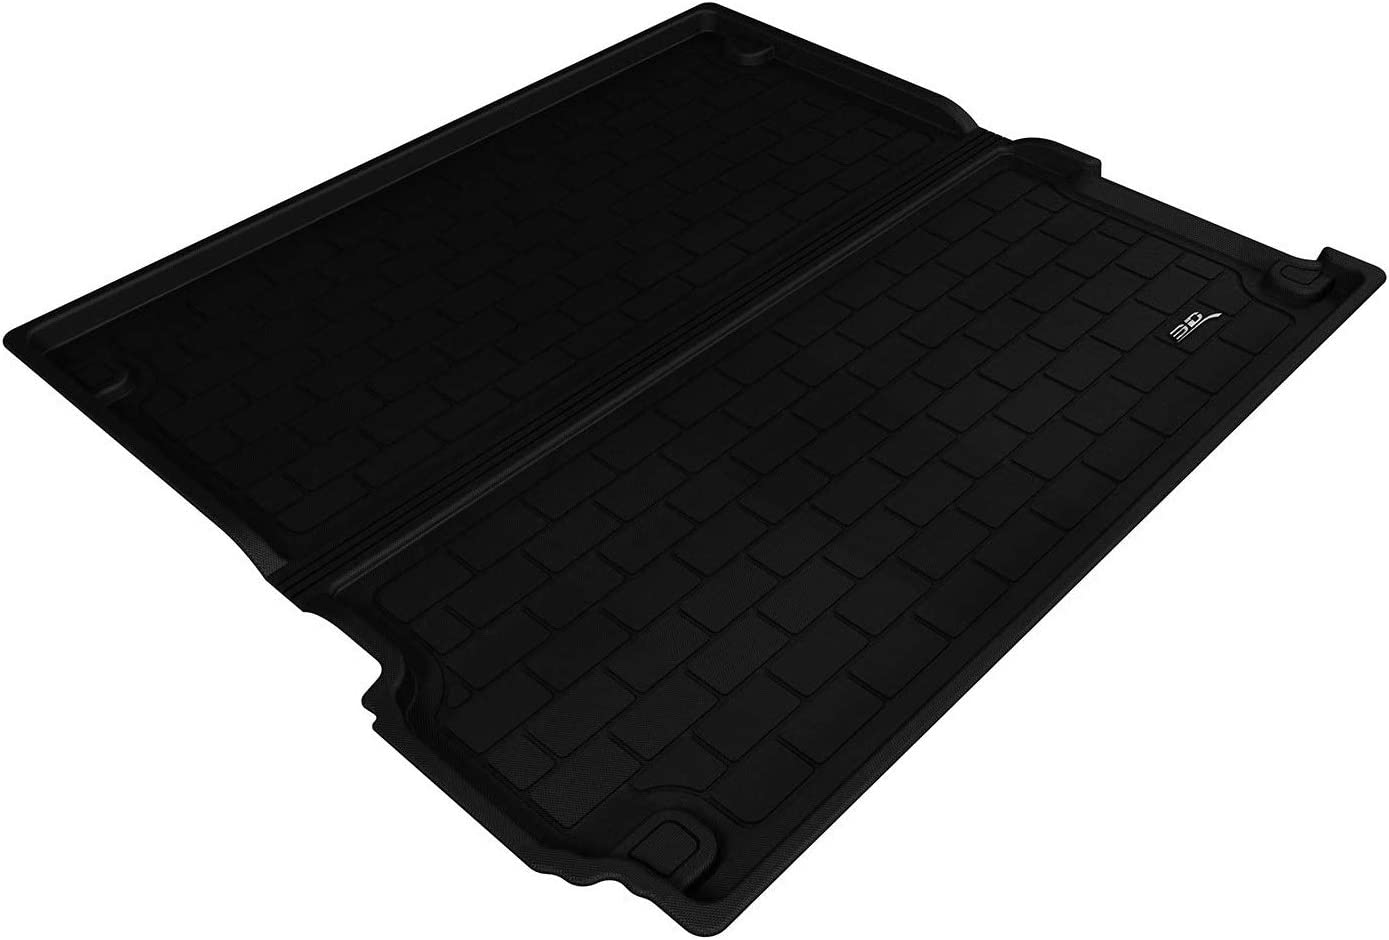 3D MAXpider M1BM0551309 Custom Fit Cargo for Liner S Max 49% OFF Sale special price All-Weather